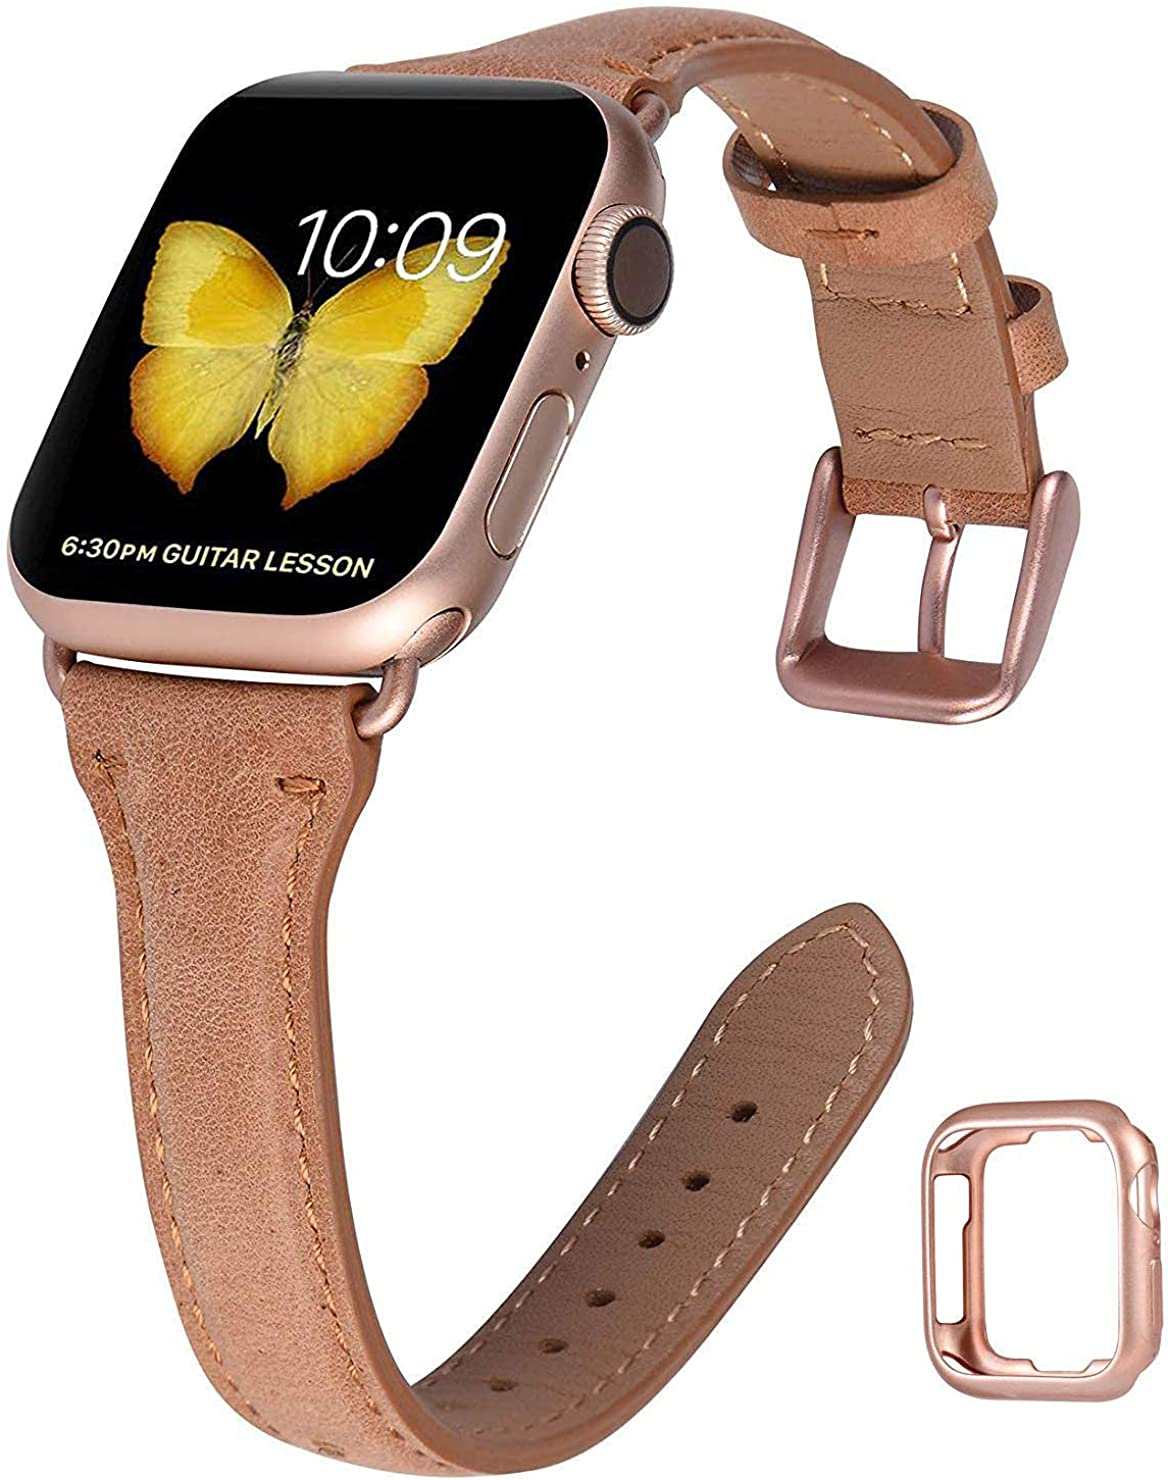 JSGJMY Genuine Leather Band Compatible with Apple Watch 38mm 40mm 42mm 44mm Women Slim Thin Strap for iWatch SE Series 6 5 4 3 2 1